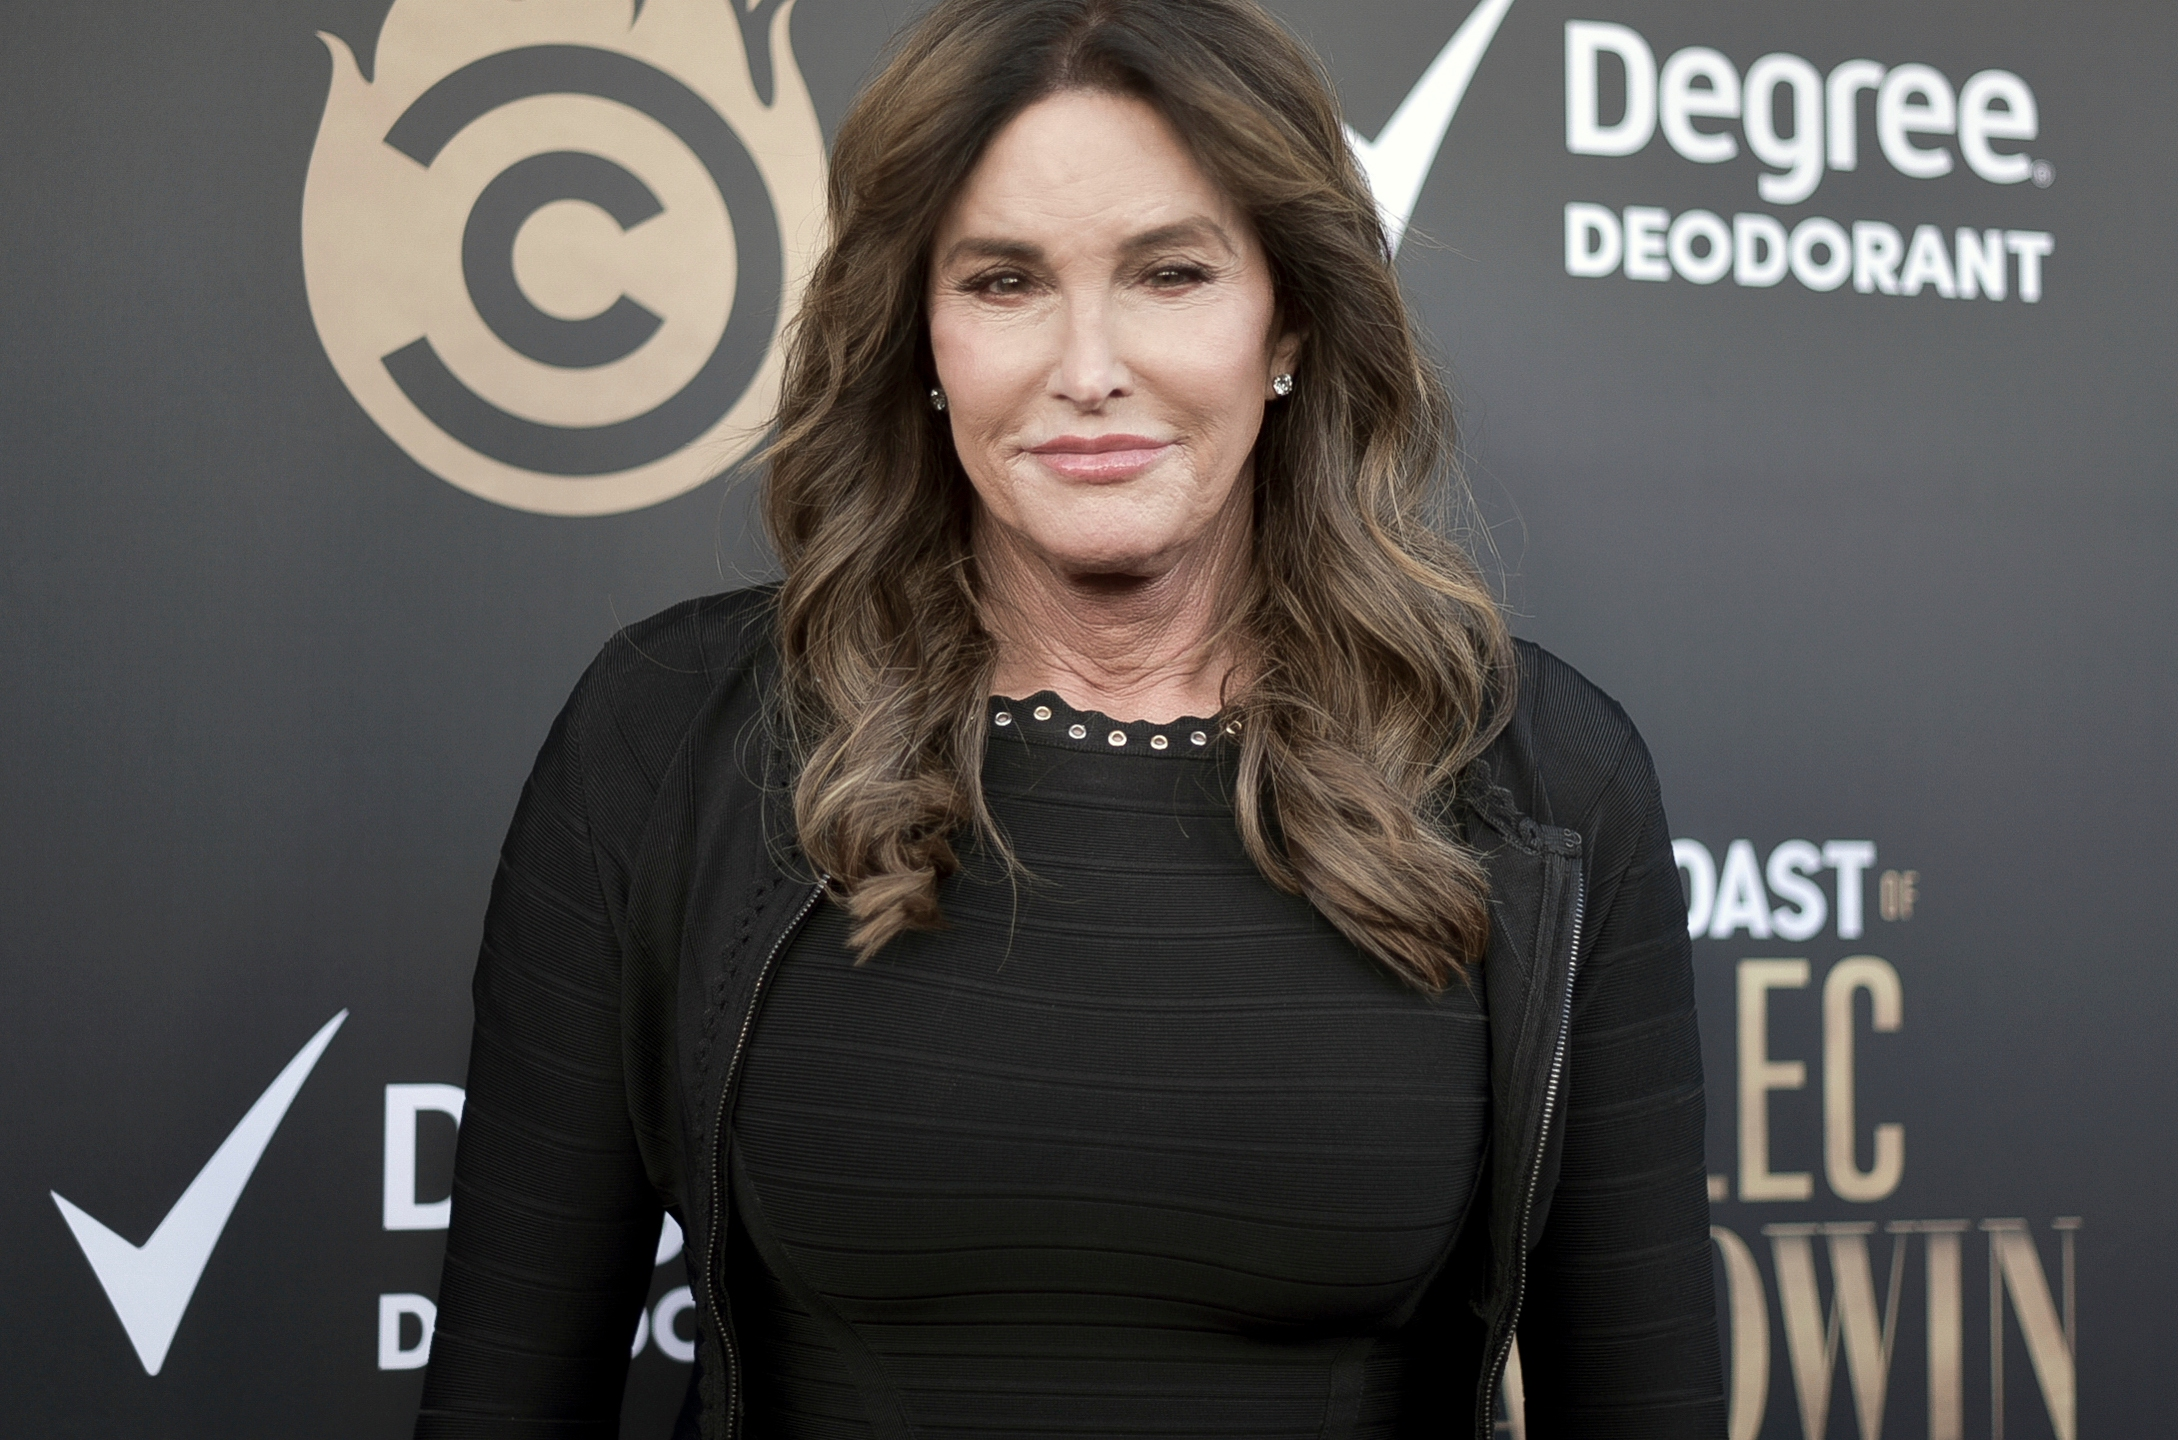 Caitlyn Jenner attends the Comedy Central Roast of Alec Baldwin in Beverly Hills, Calif. on Sept. 7, 2019. (Richard Shotwell/Invision/AP, File)